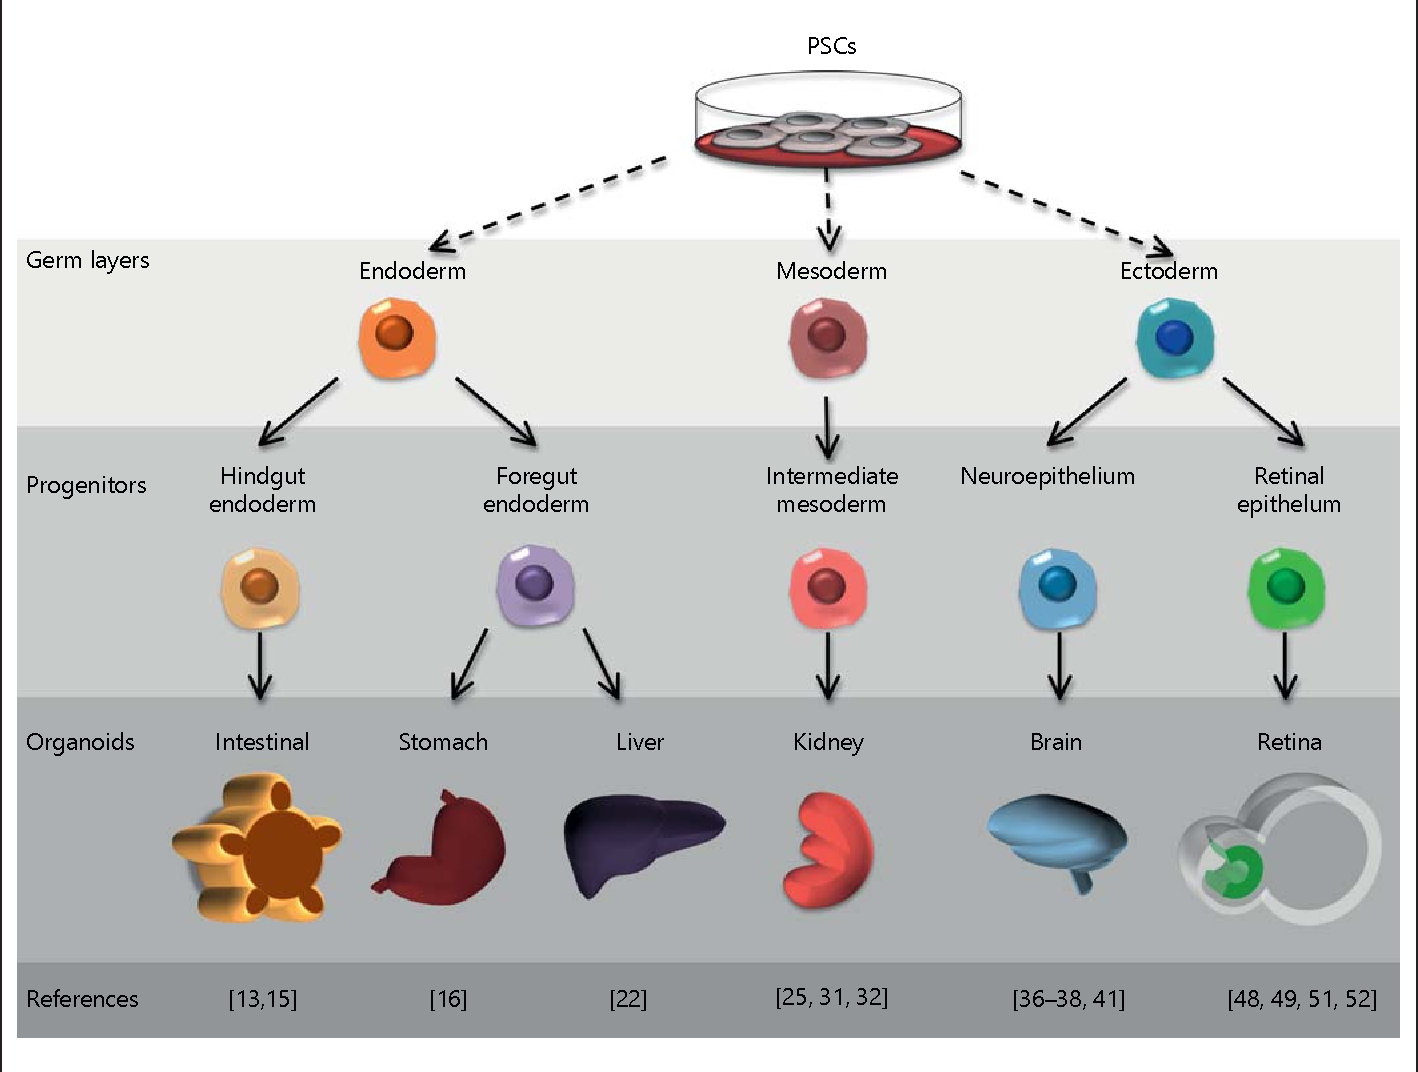 Neurotoxicity Predicted By Organoids >> Figure 1 From Organoid Models And Applications In Biomedical